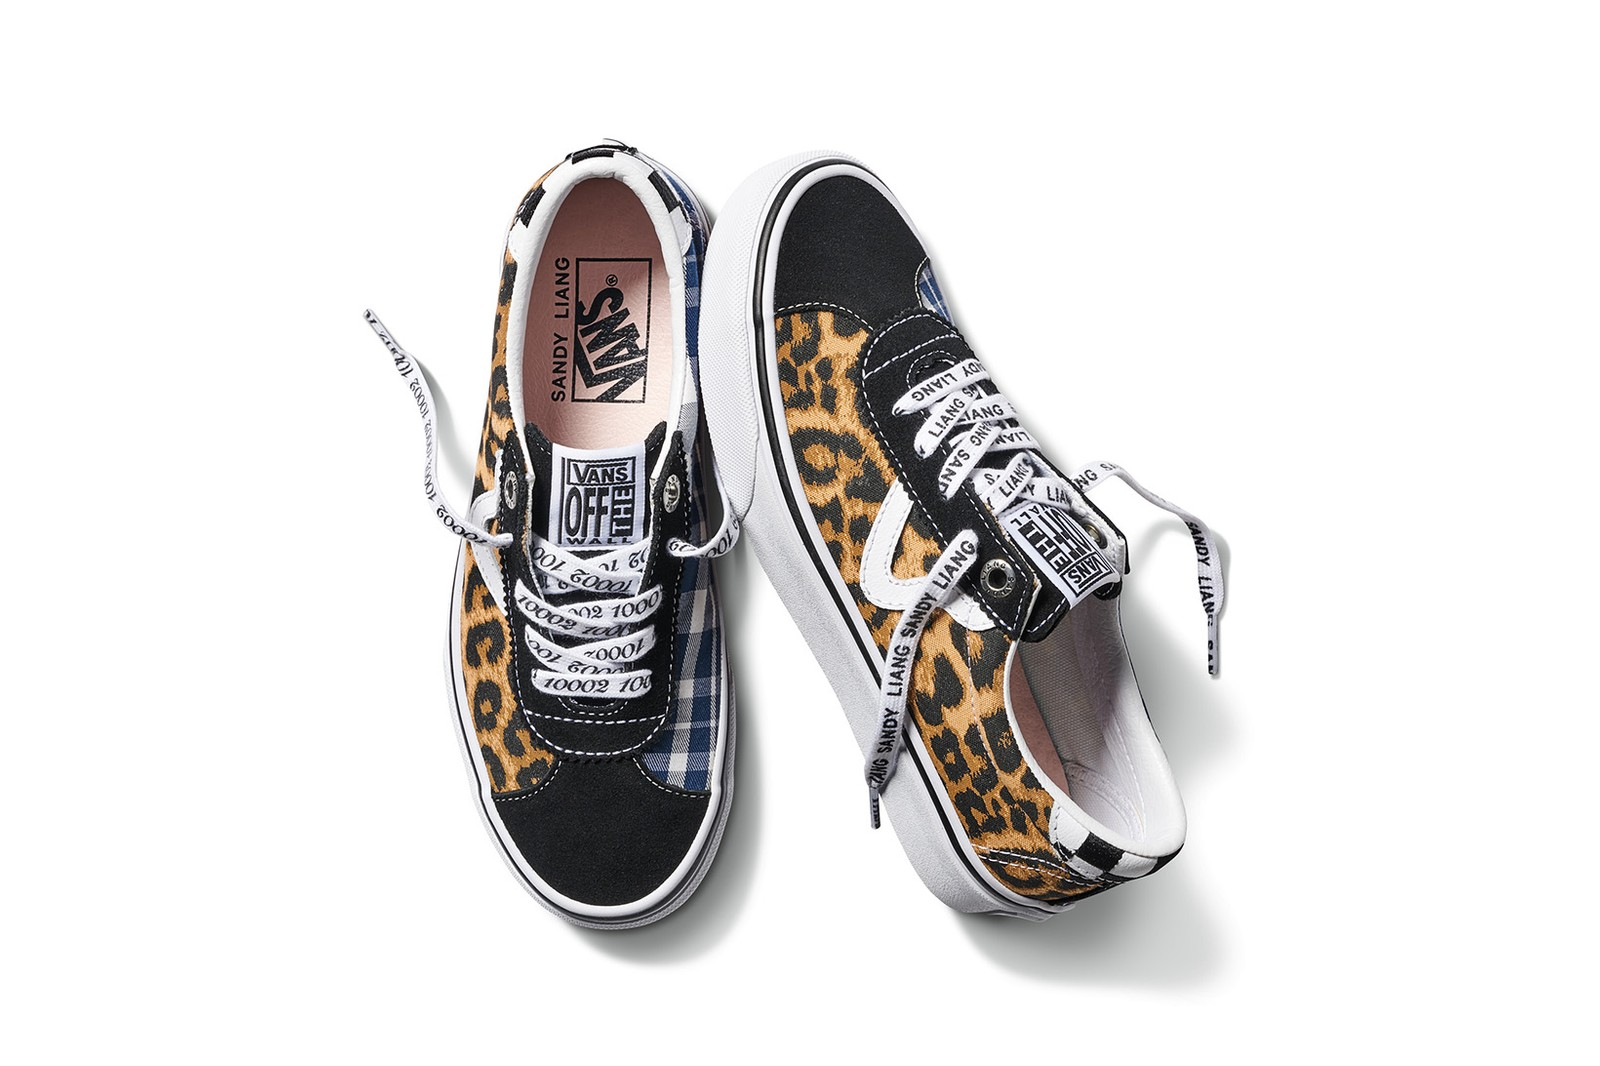 Sandy Liang x Vans Collection Collaboration Campaign